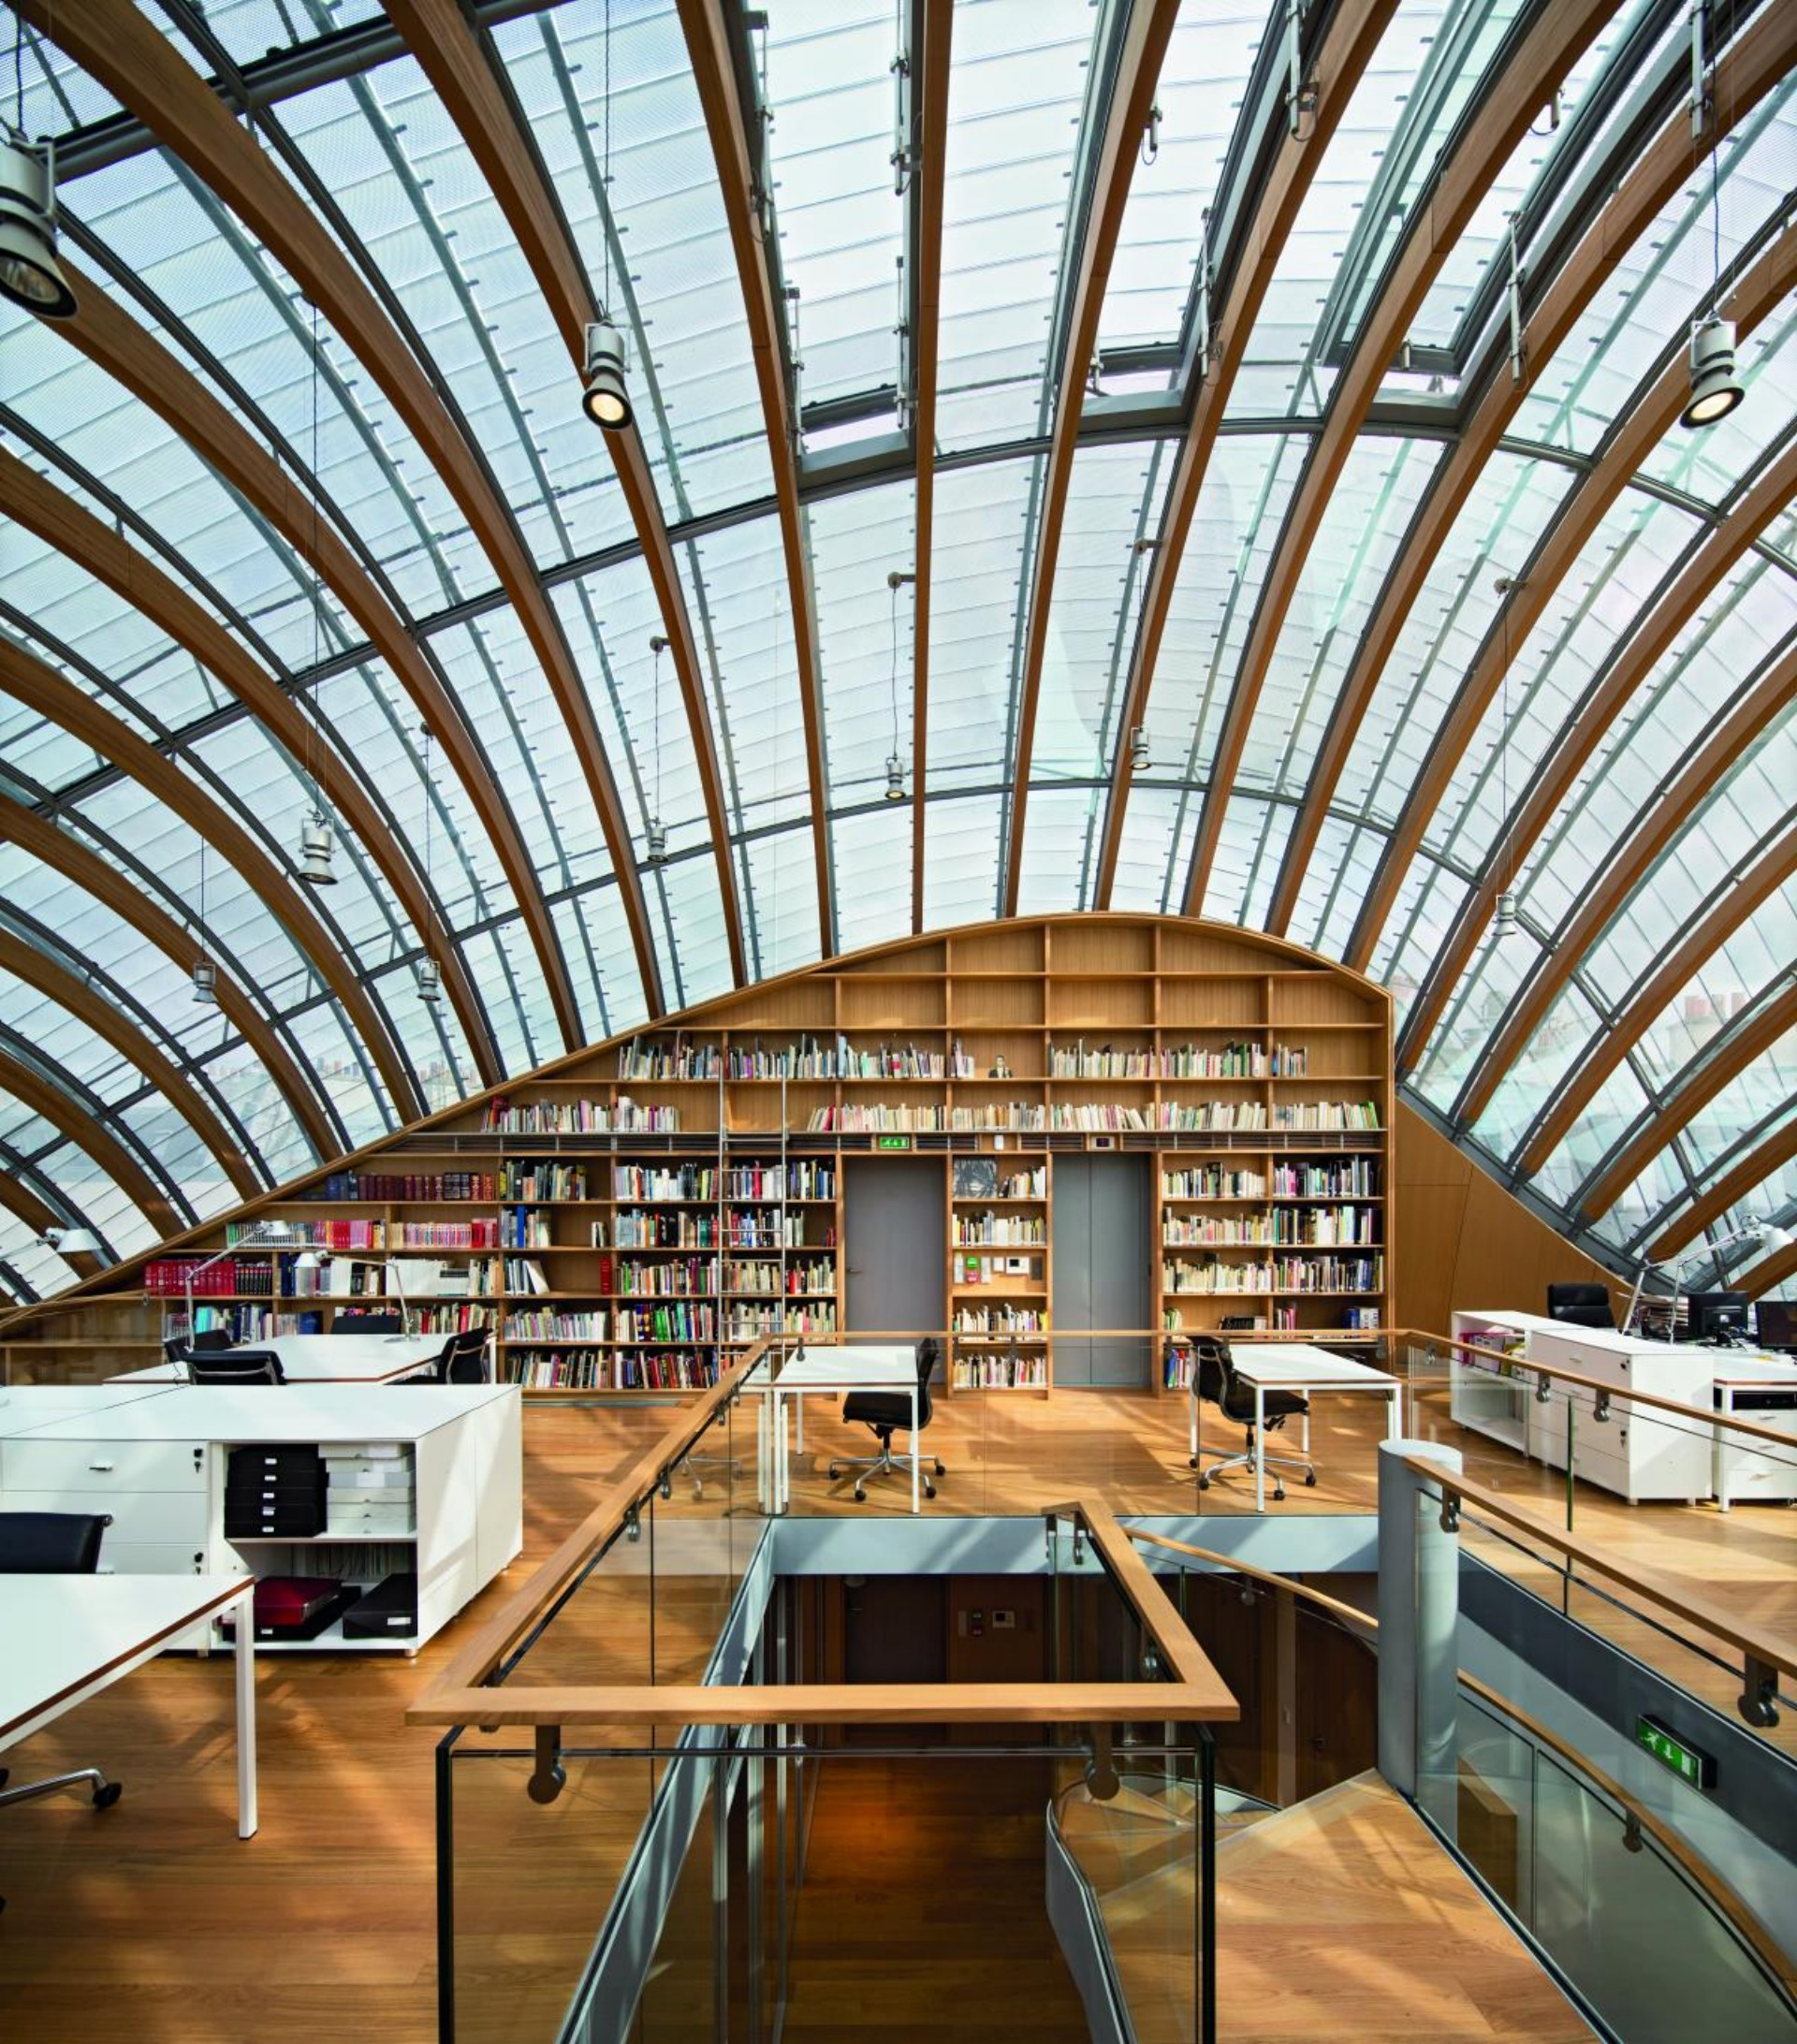 Opere Di Renzo Piano renzo piano exhibition: the art of making buildings